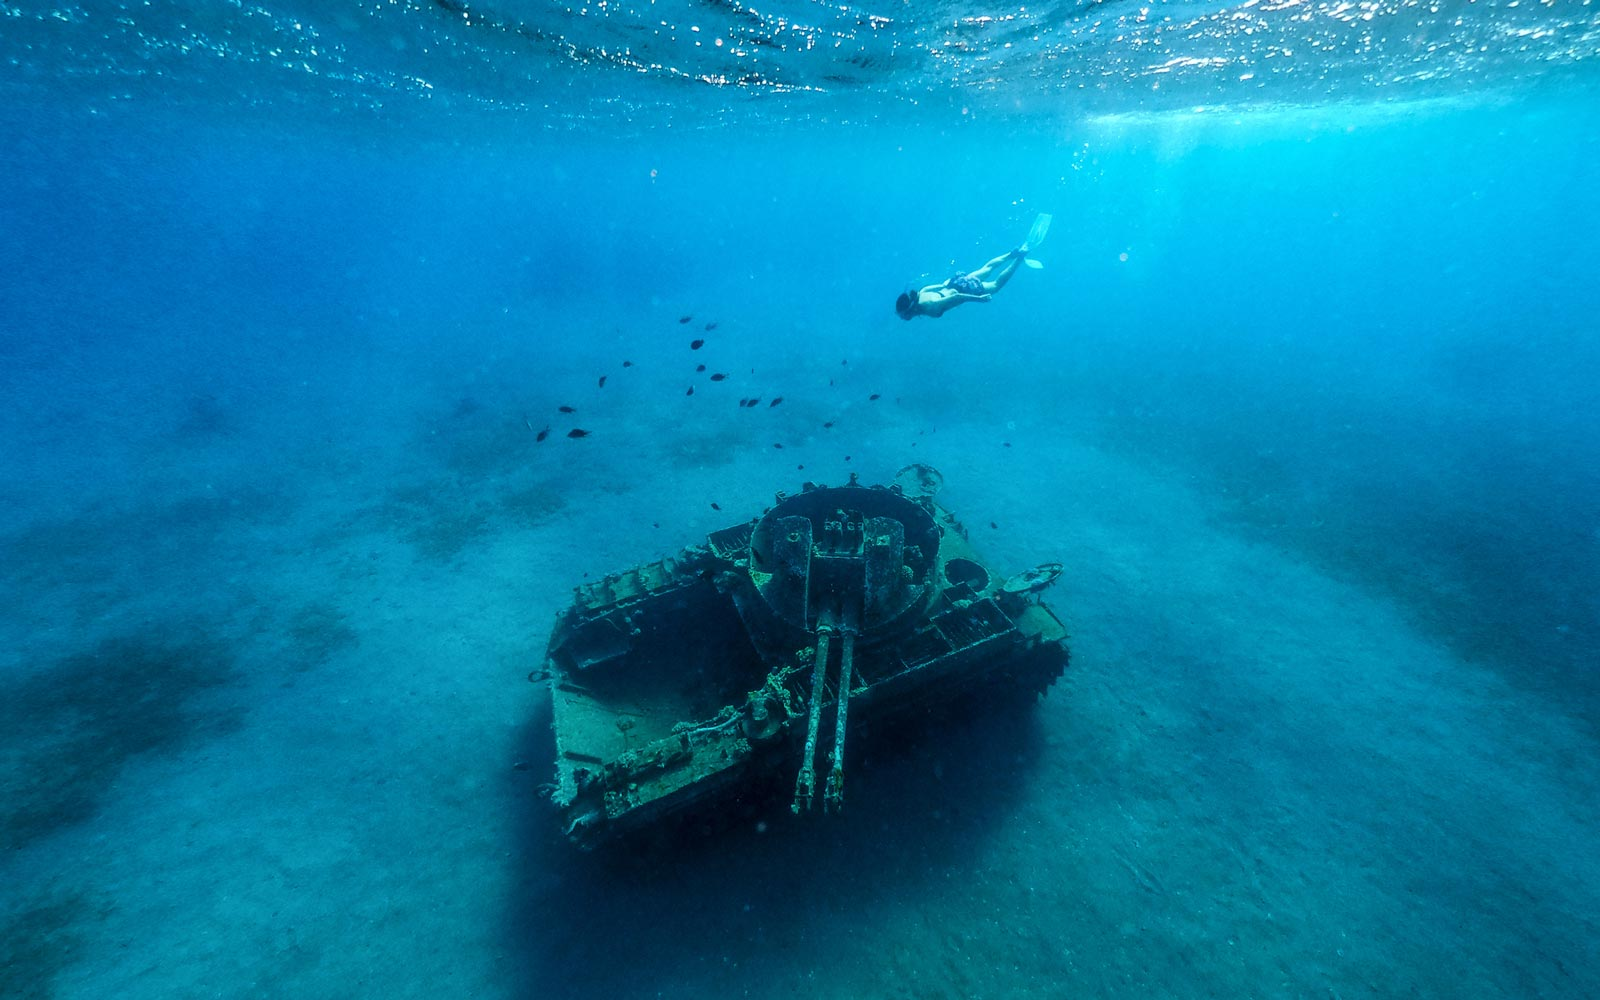 Jordan Submerged a Bunch of Military Tanks on Purpose to Create This Insane New Dive Site